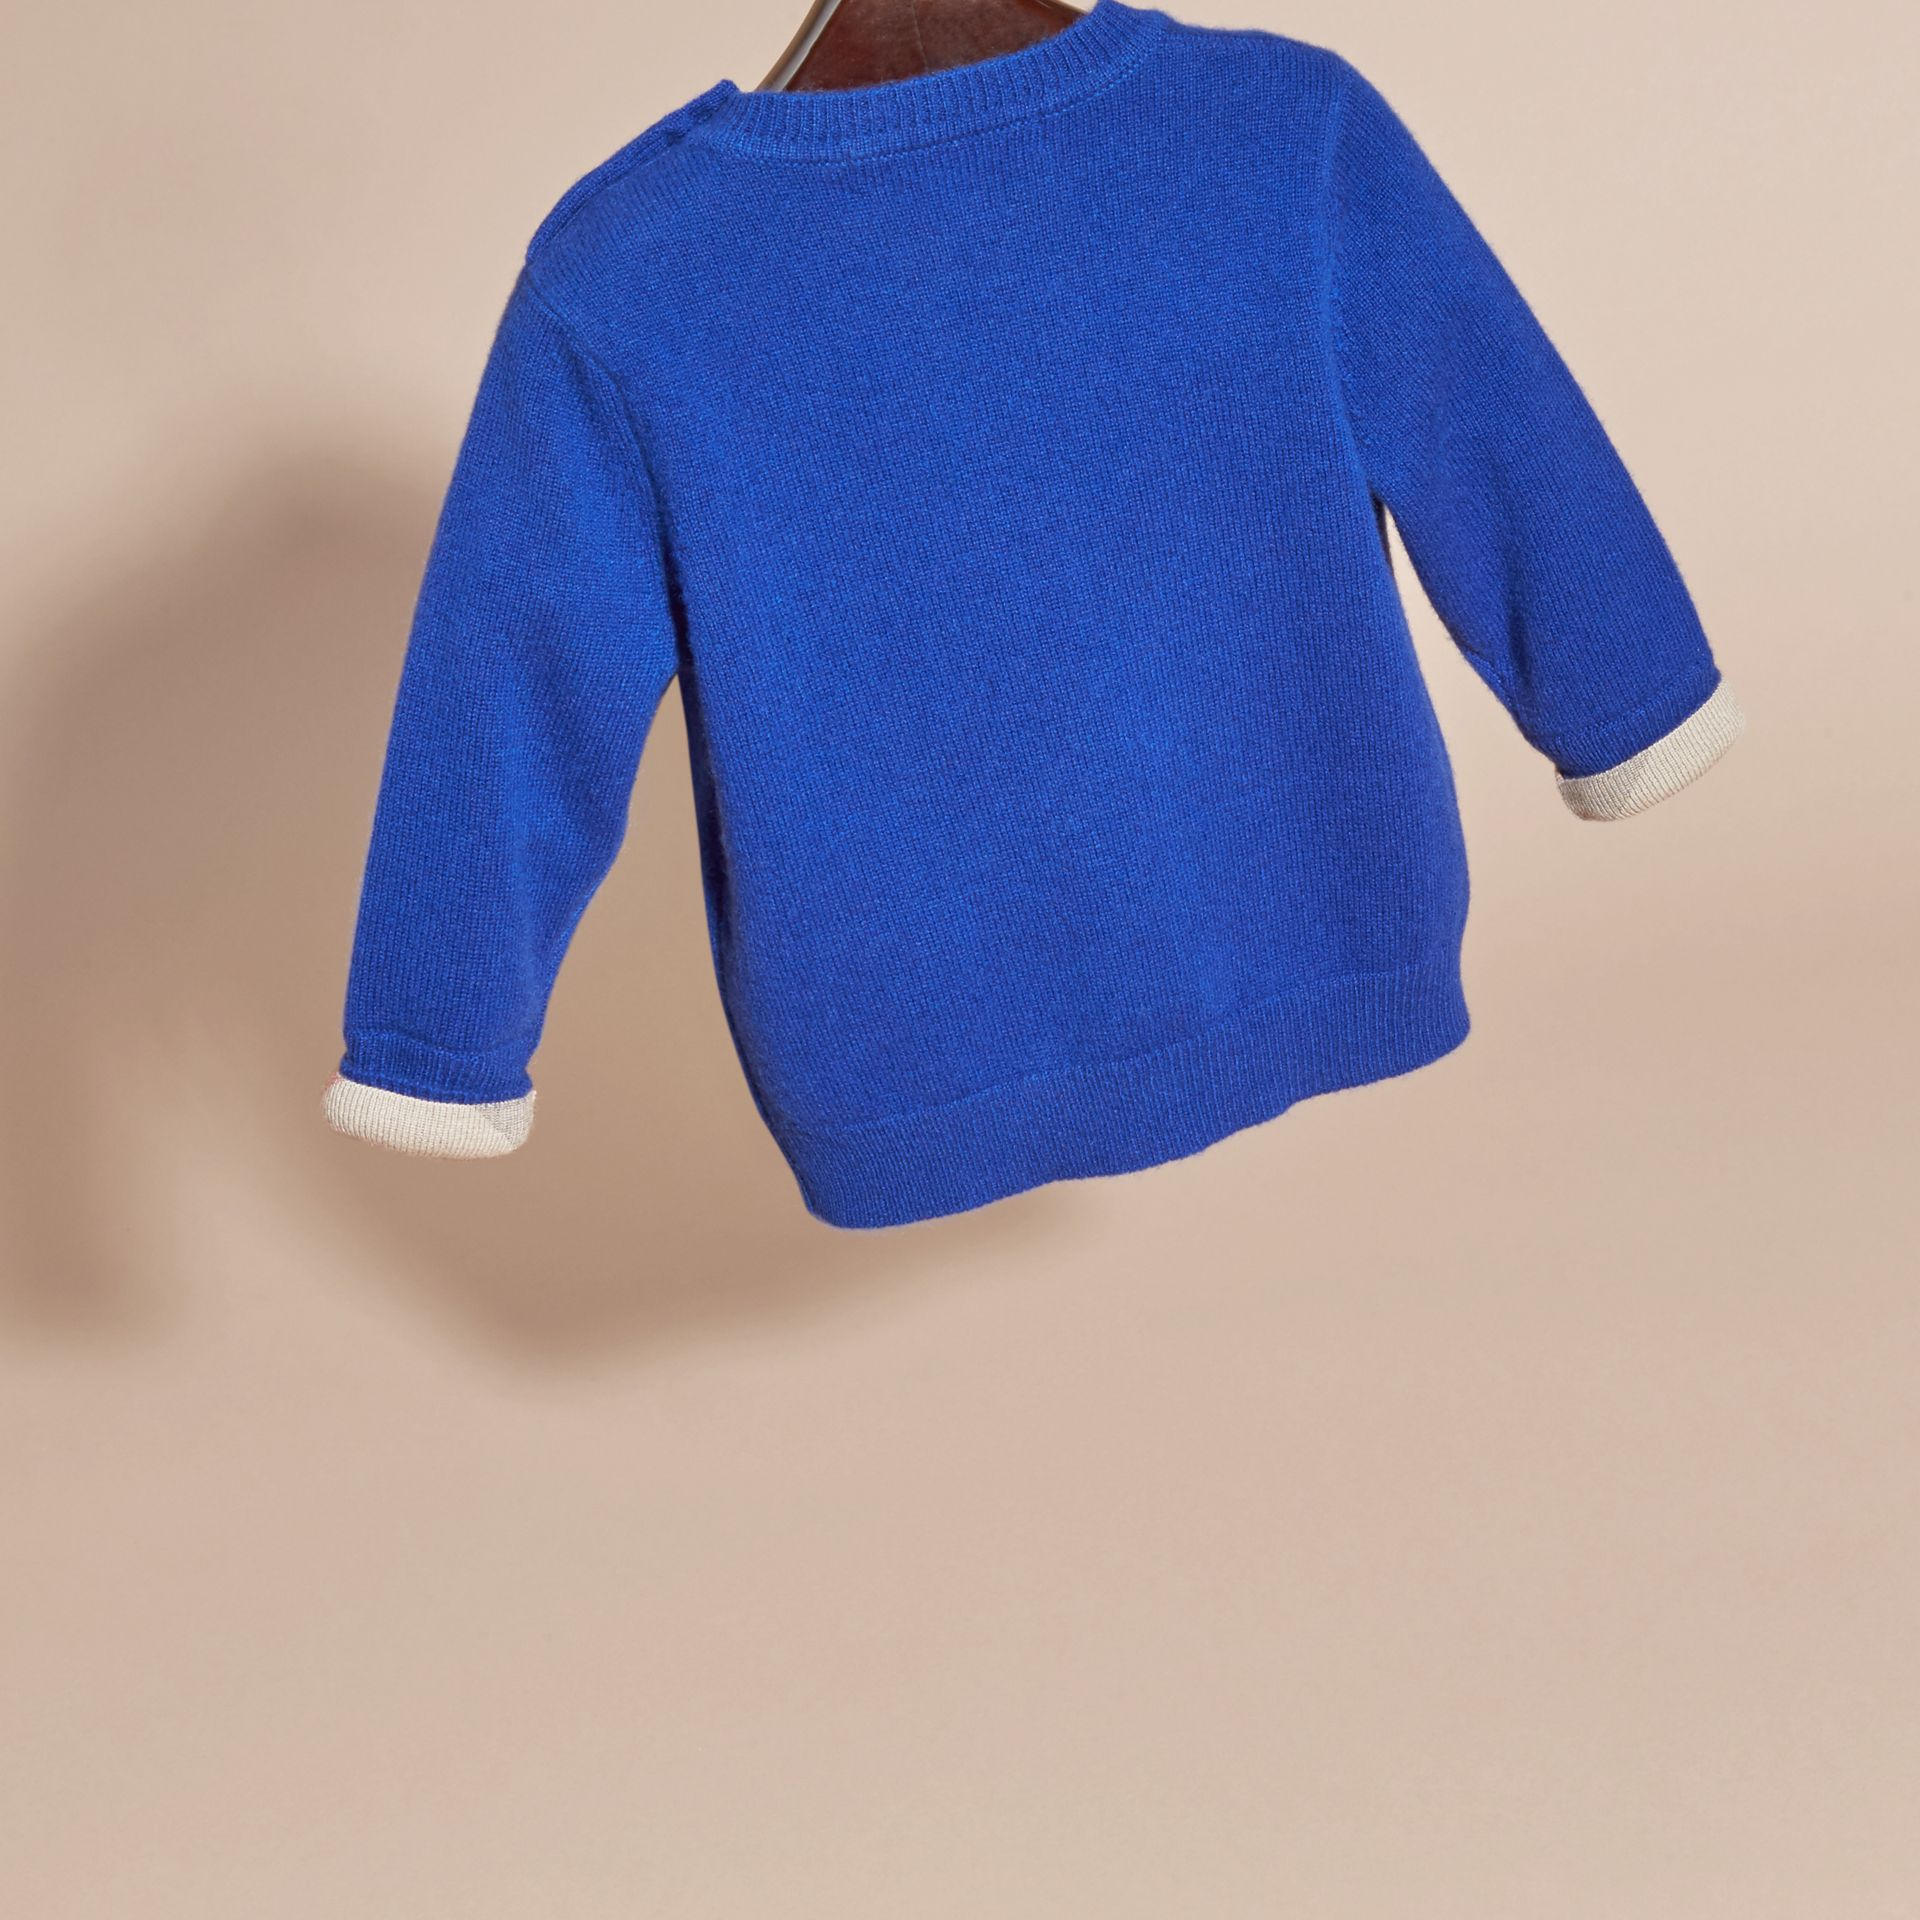 Brilliant blue Check Detail Cashmere Sweater Brilliant Blue - gallery image 4